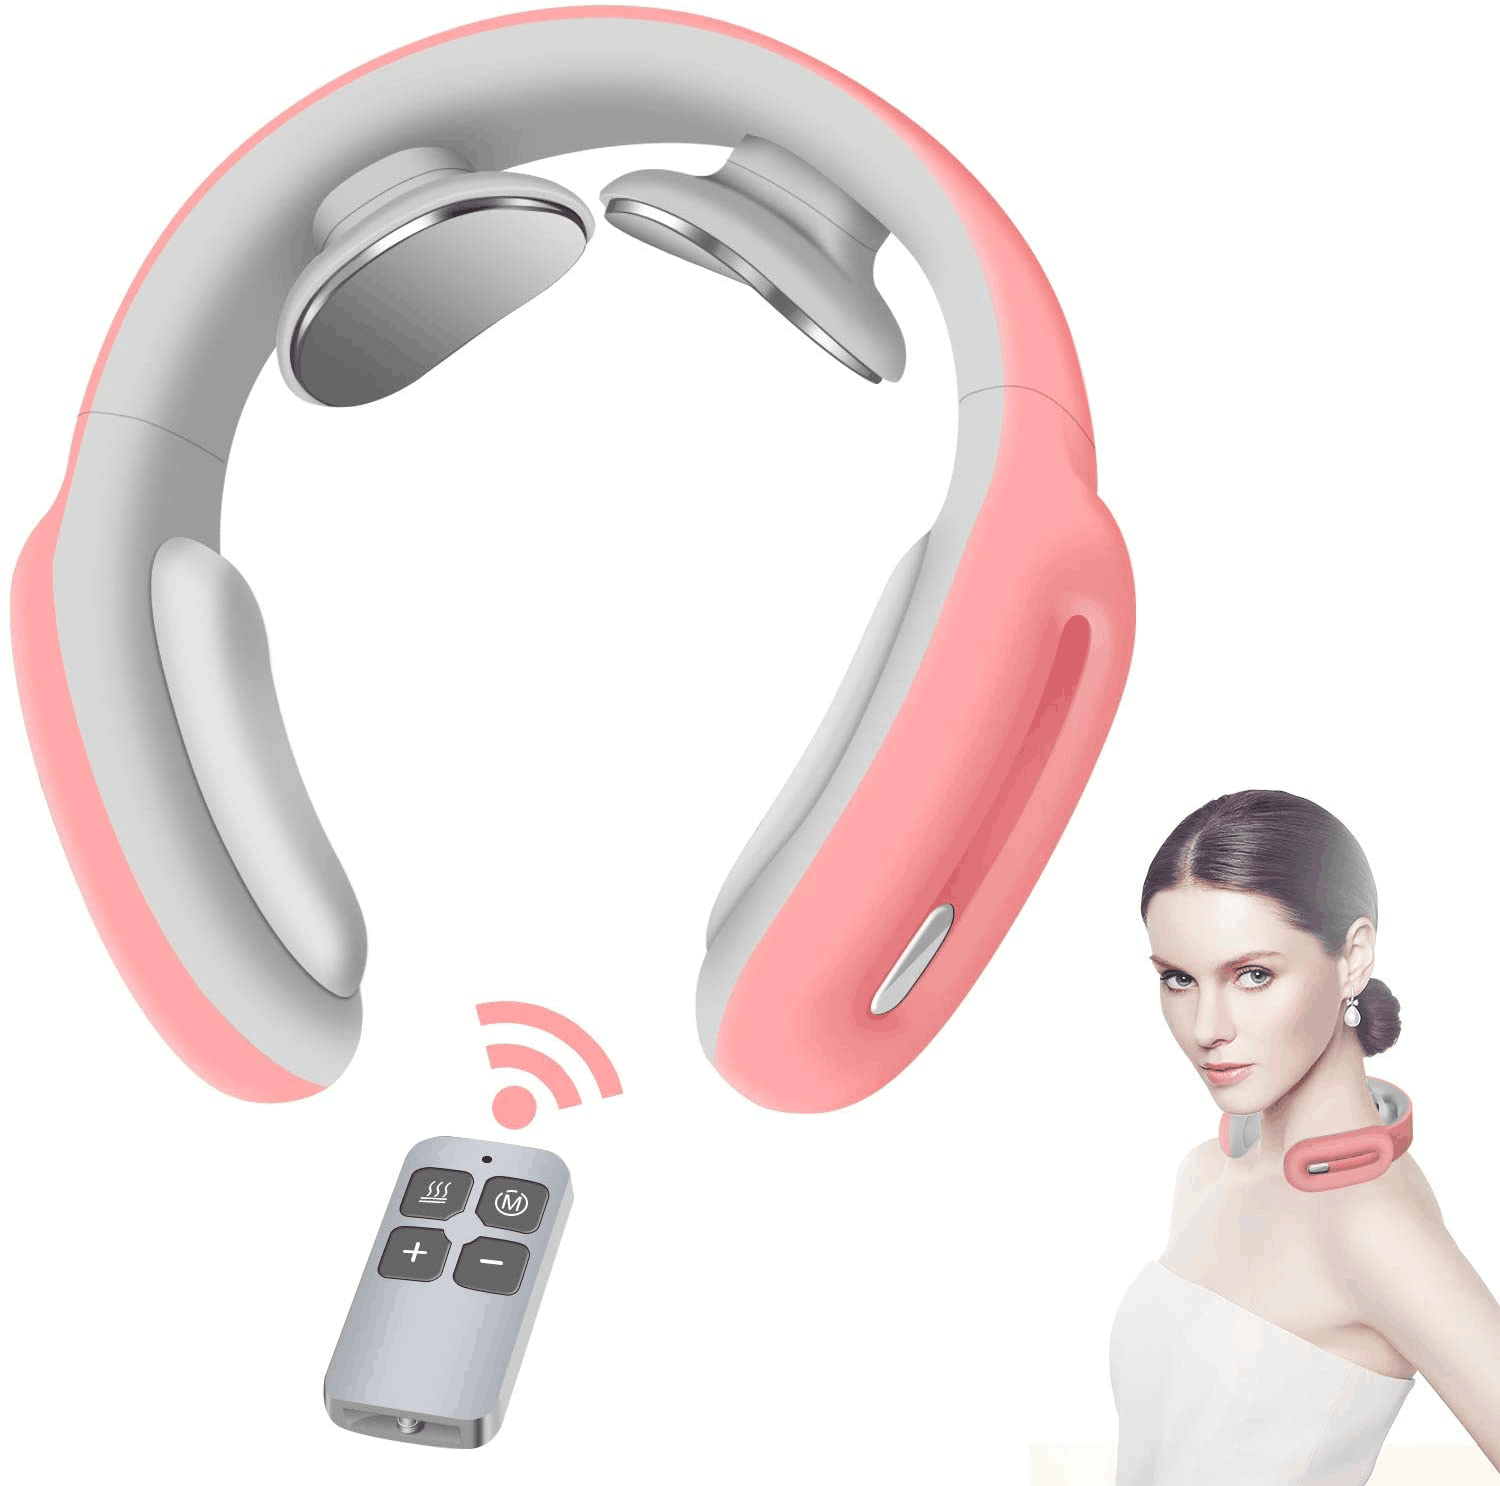 Cotsoco Neck Massager, Intelligent Neck Massage with Heat, 3 Modes 15 Levels Deep Tissue Electric Massager Use at Home Office Car for Pain Relief